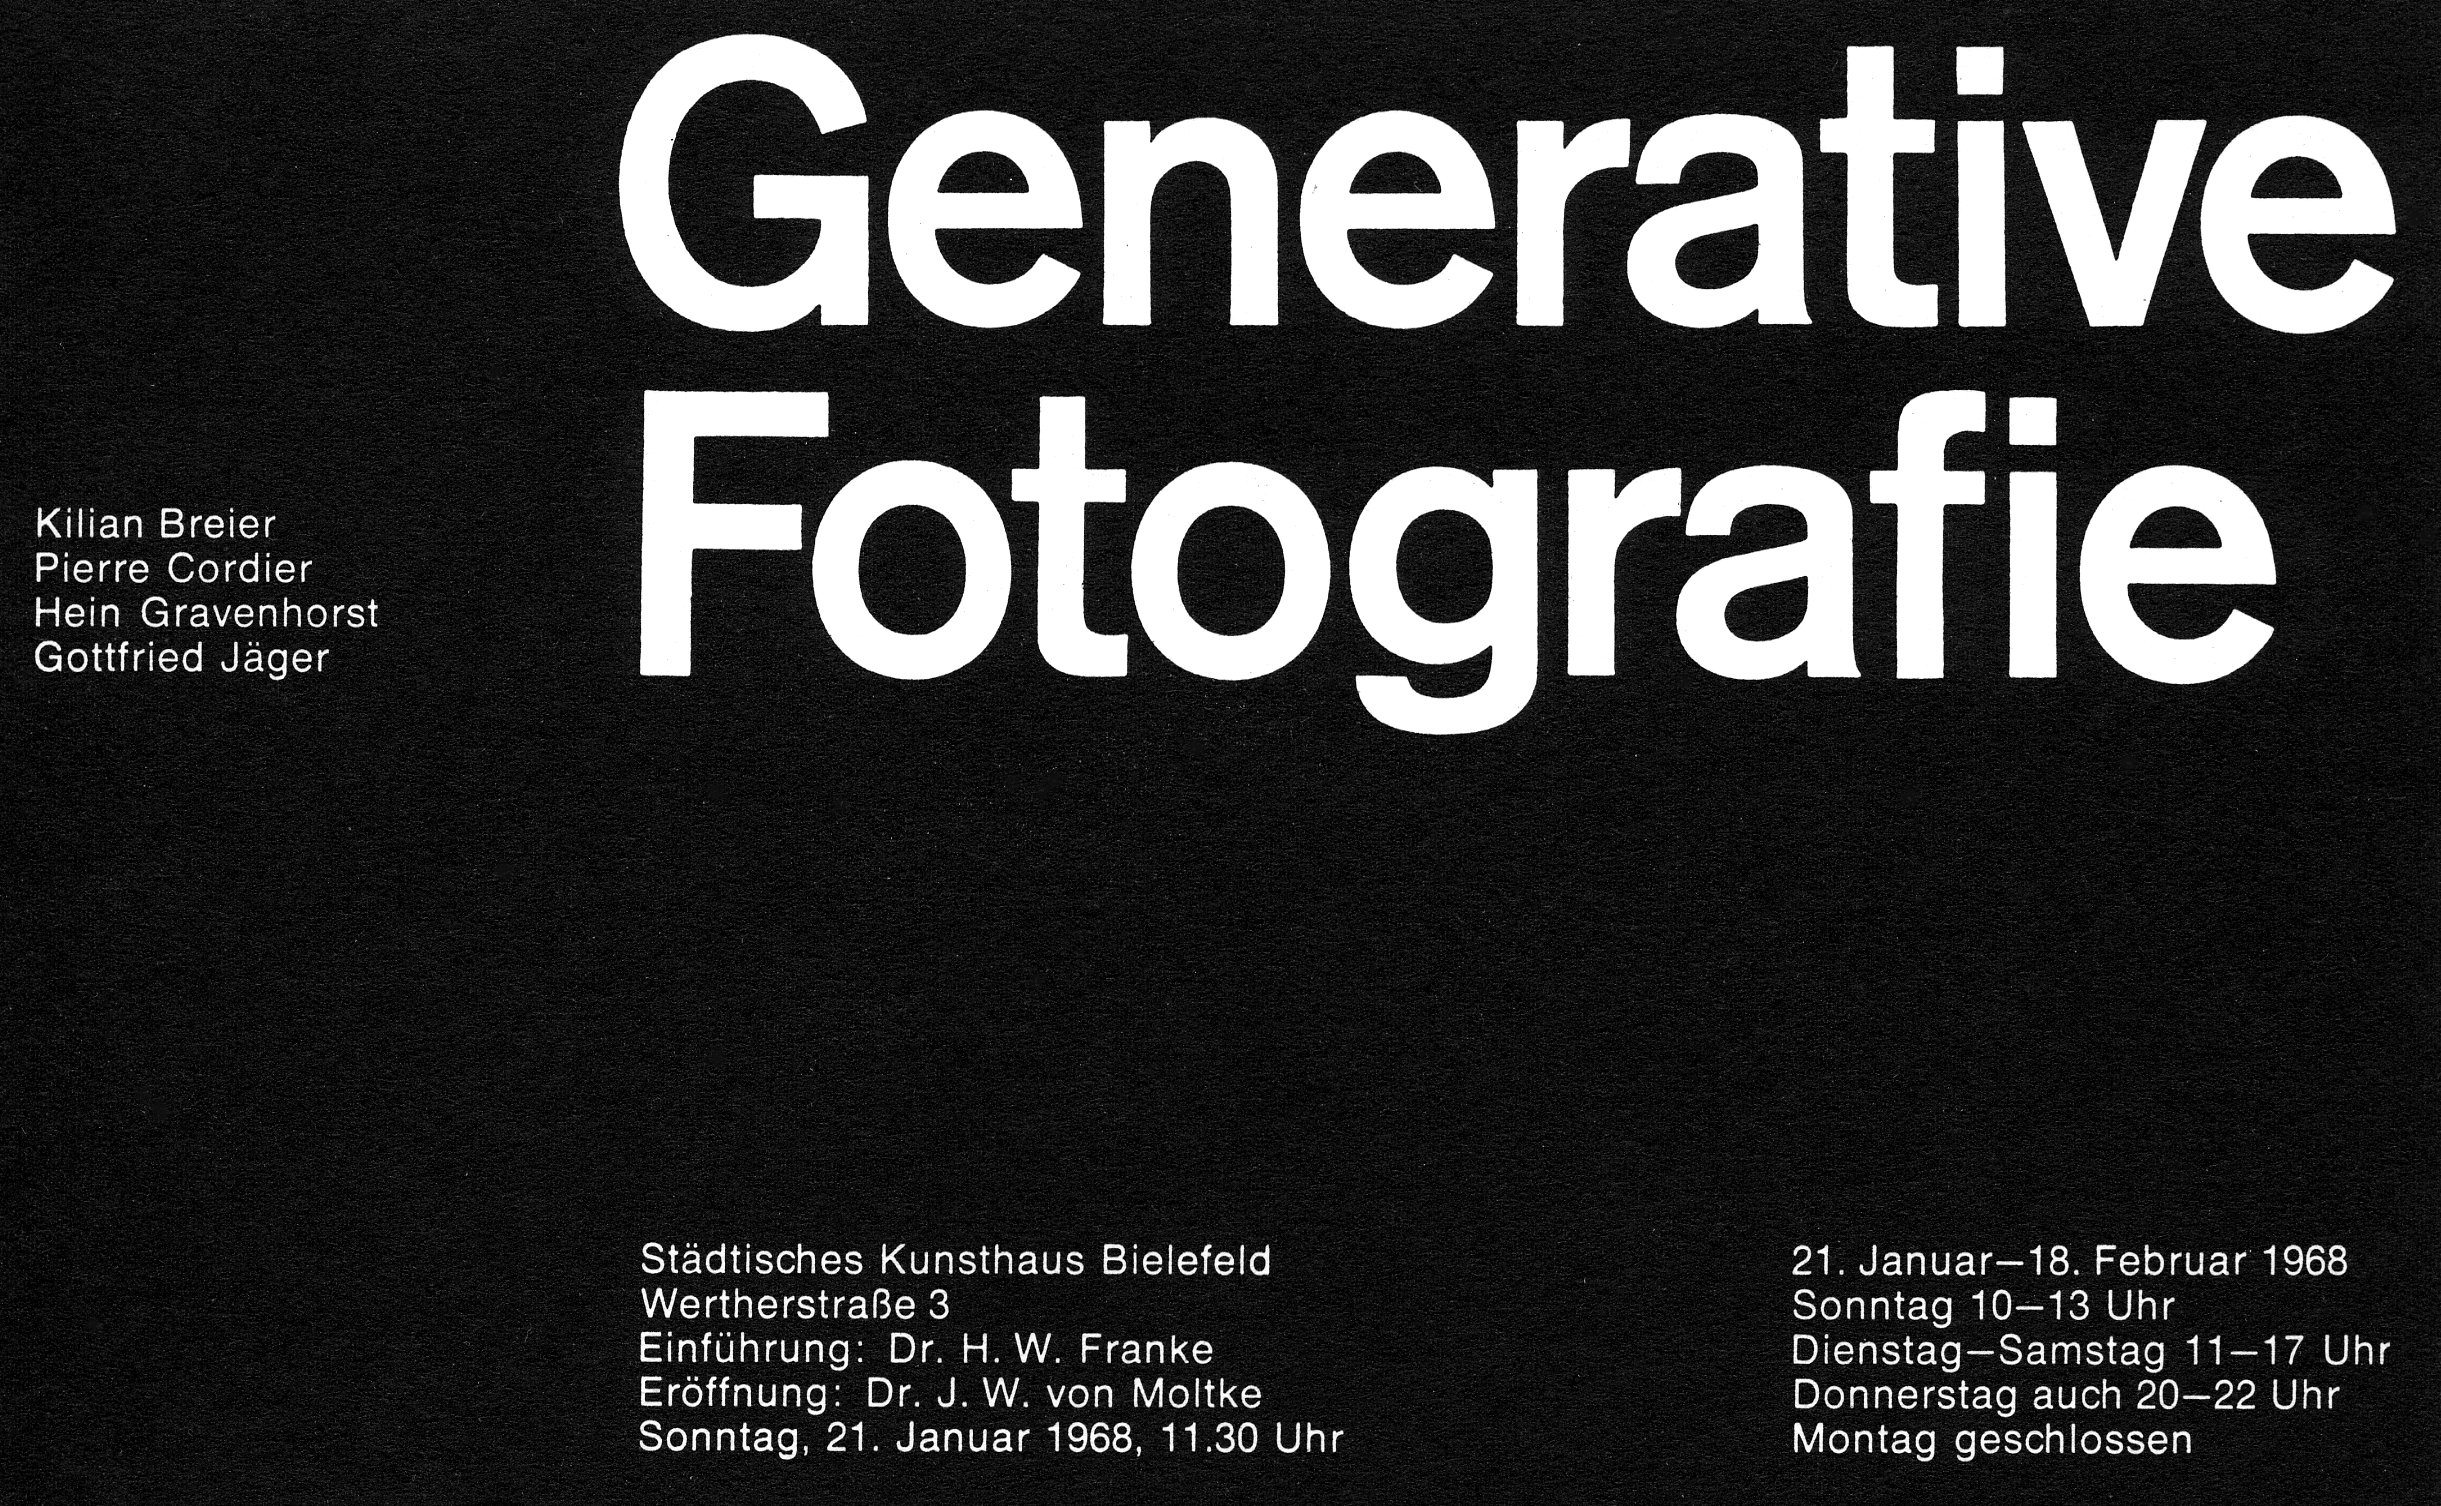 Generative Fotografie , invitation card for the exhibition at Kunsthaus Bielefeld, 1968, designed by Heinz Baier